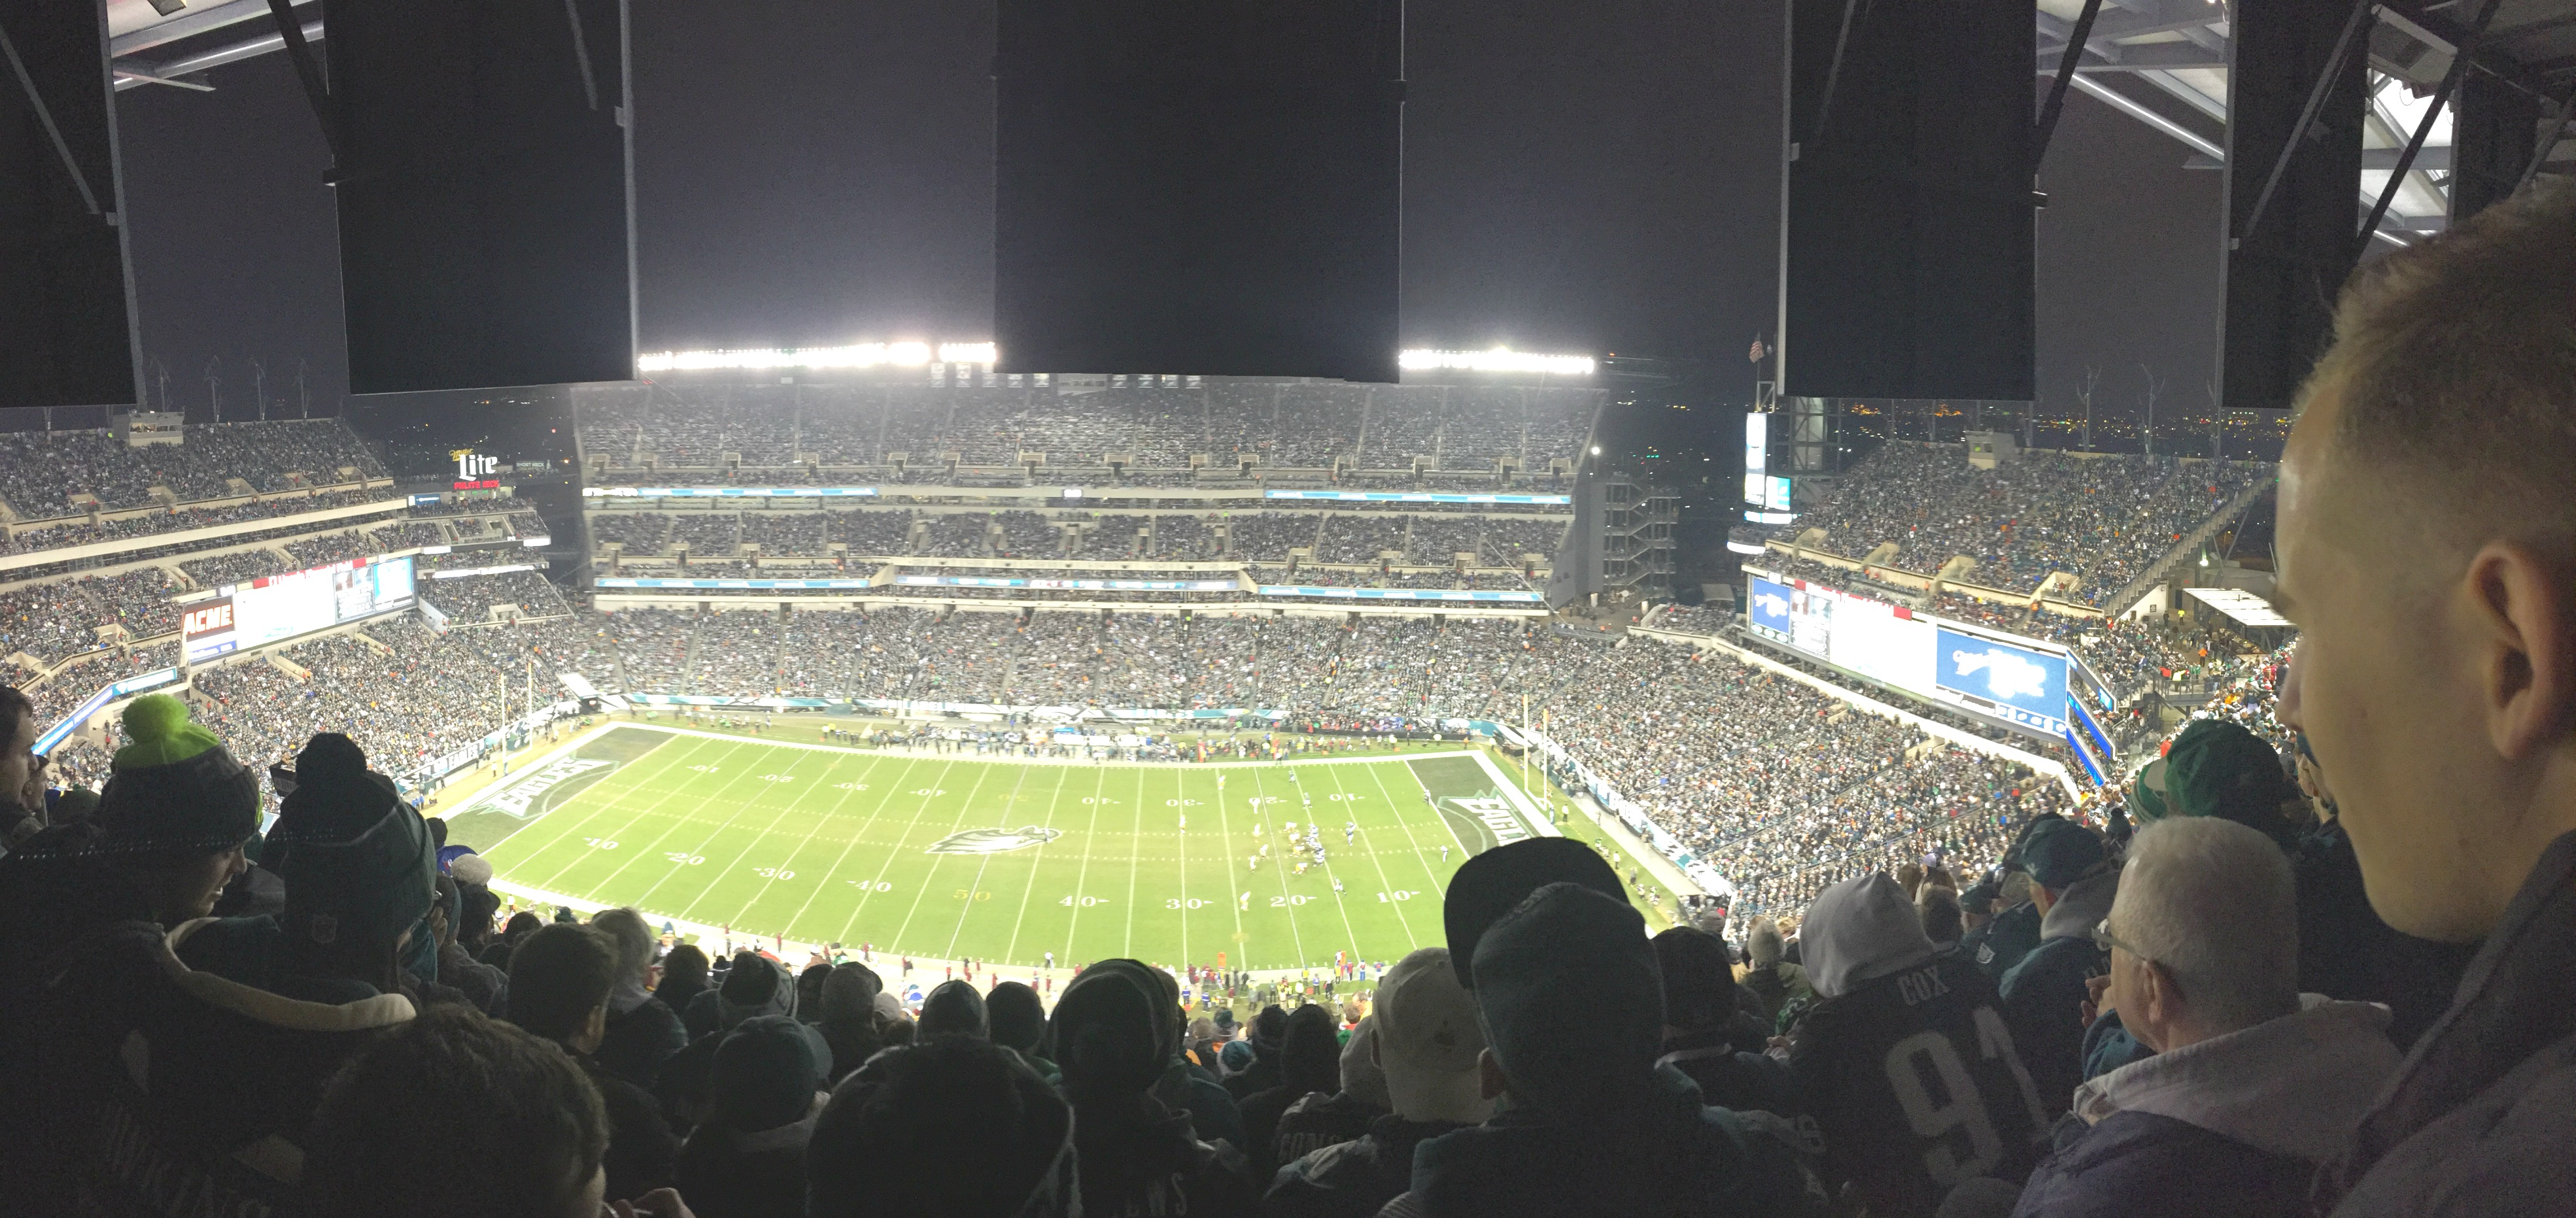 Eagles vs Redskins game